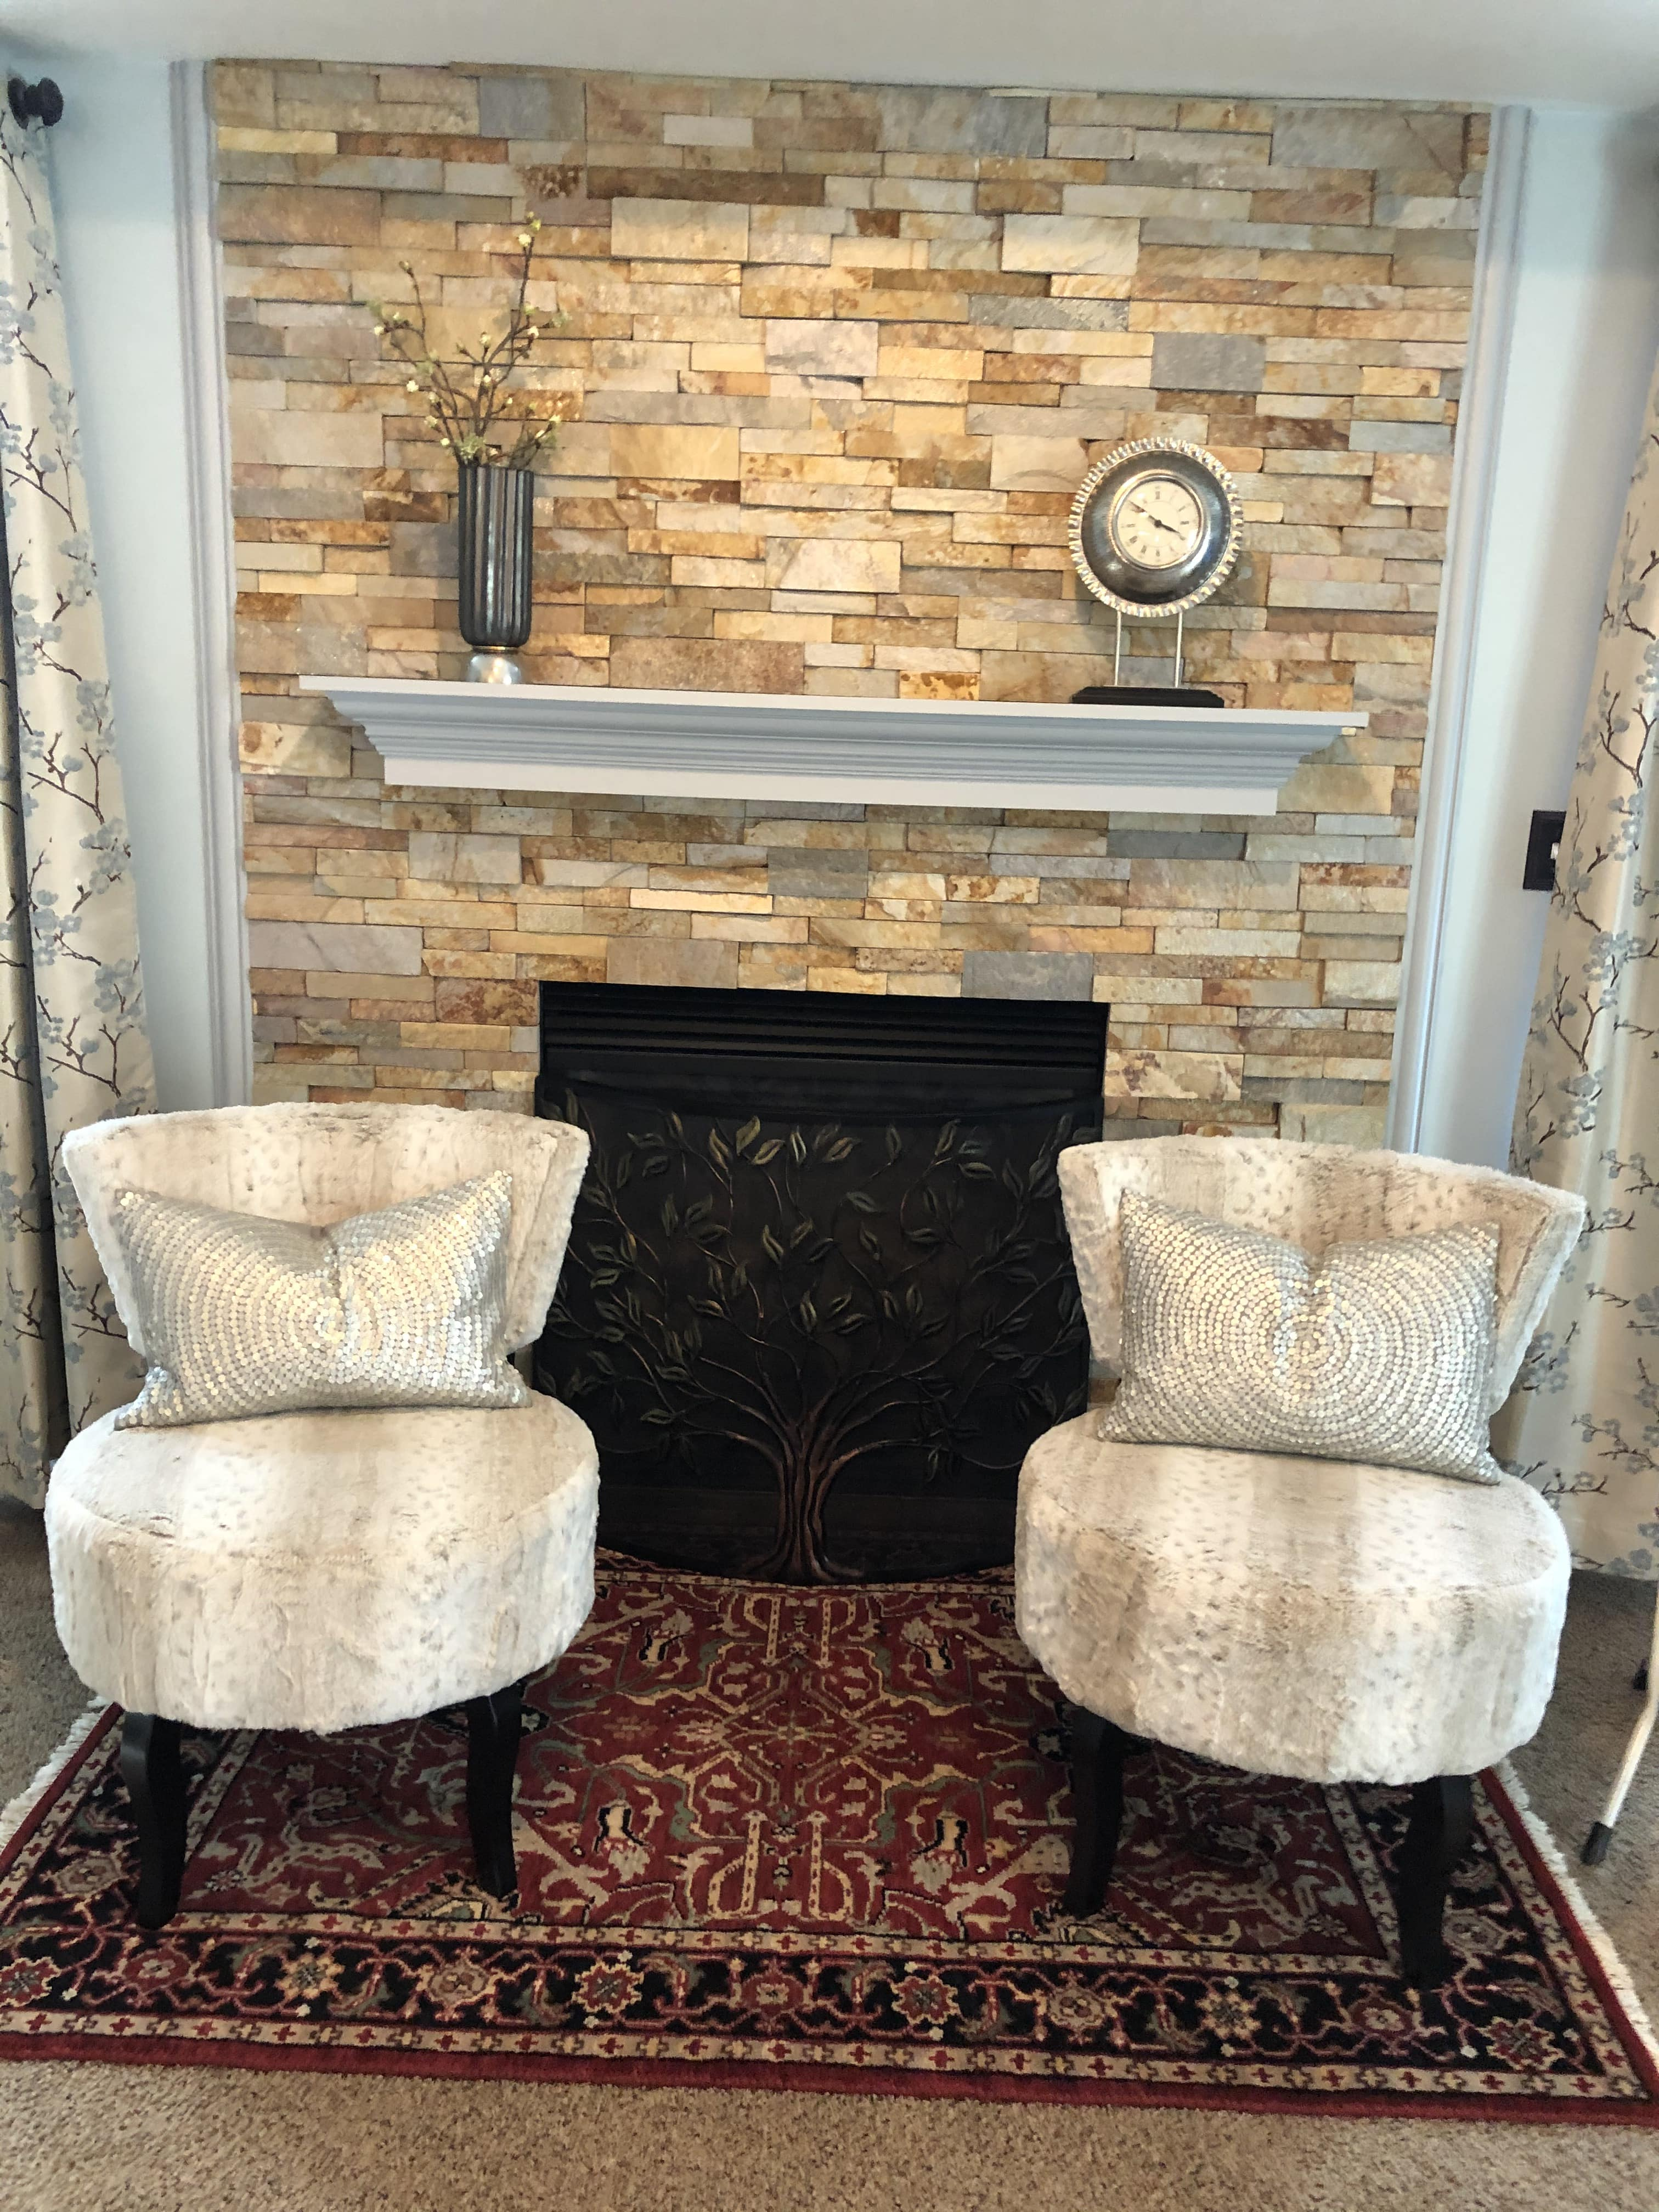 After photo of a renovated residential fireplace with Norstone Aztec XL Series Rock Panels installed from floor to ceiling